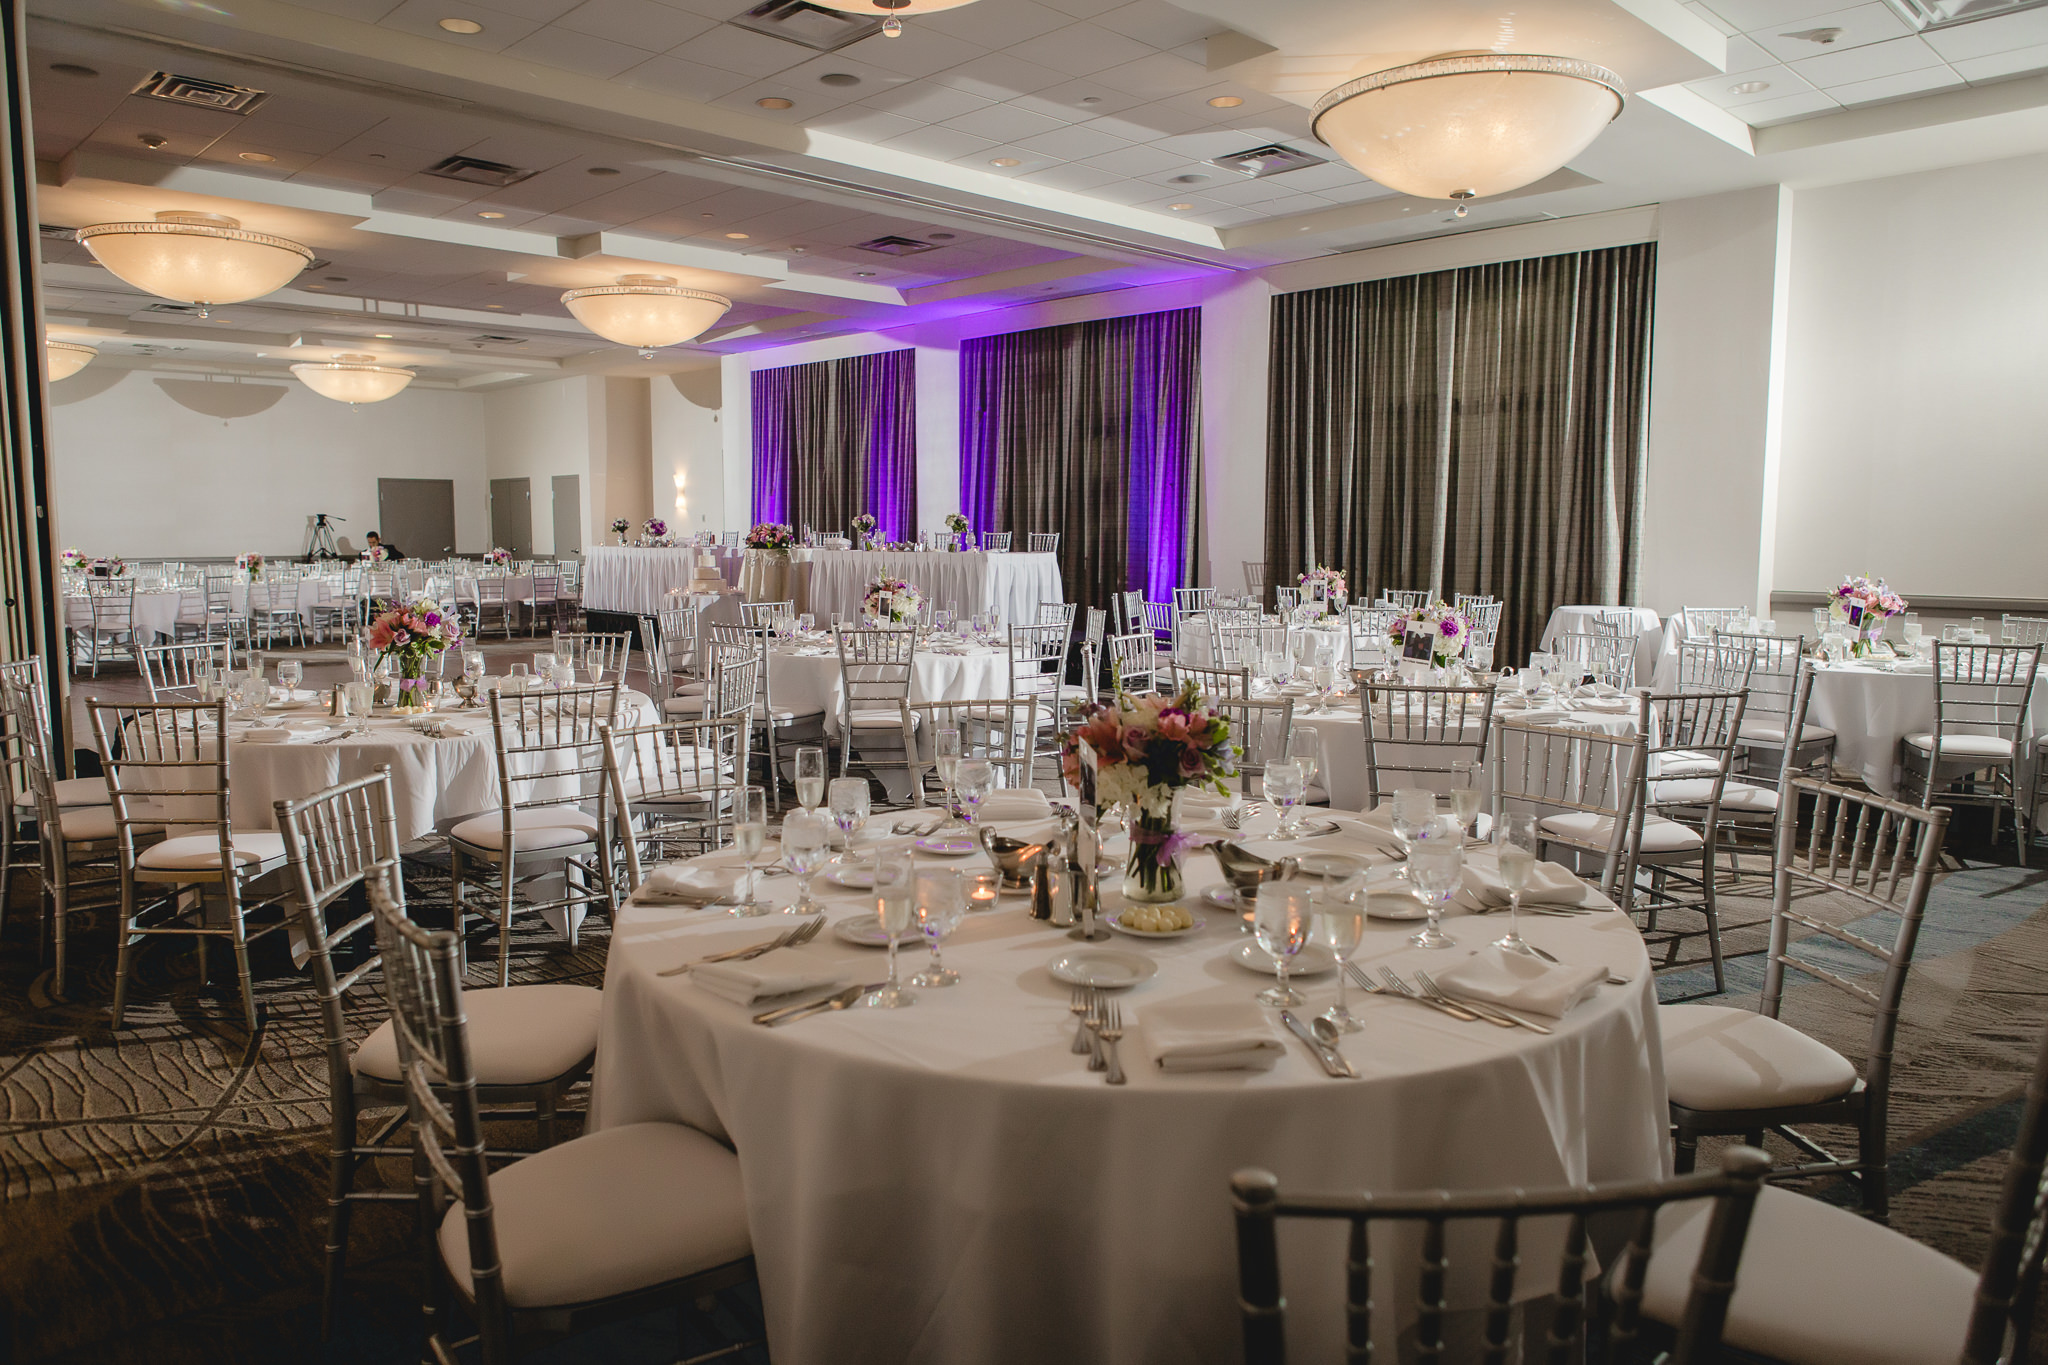 Pittsburgh Airport Marriott ballroom decorated for a wedding reception